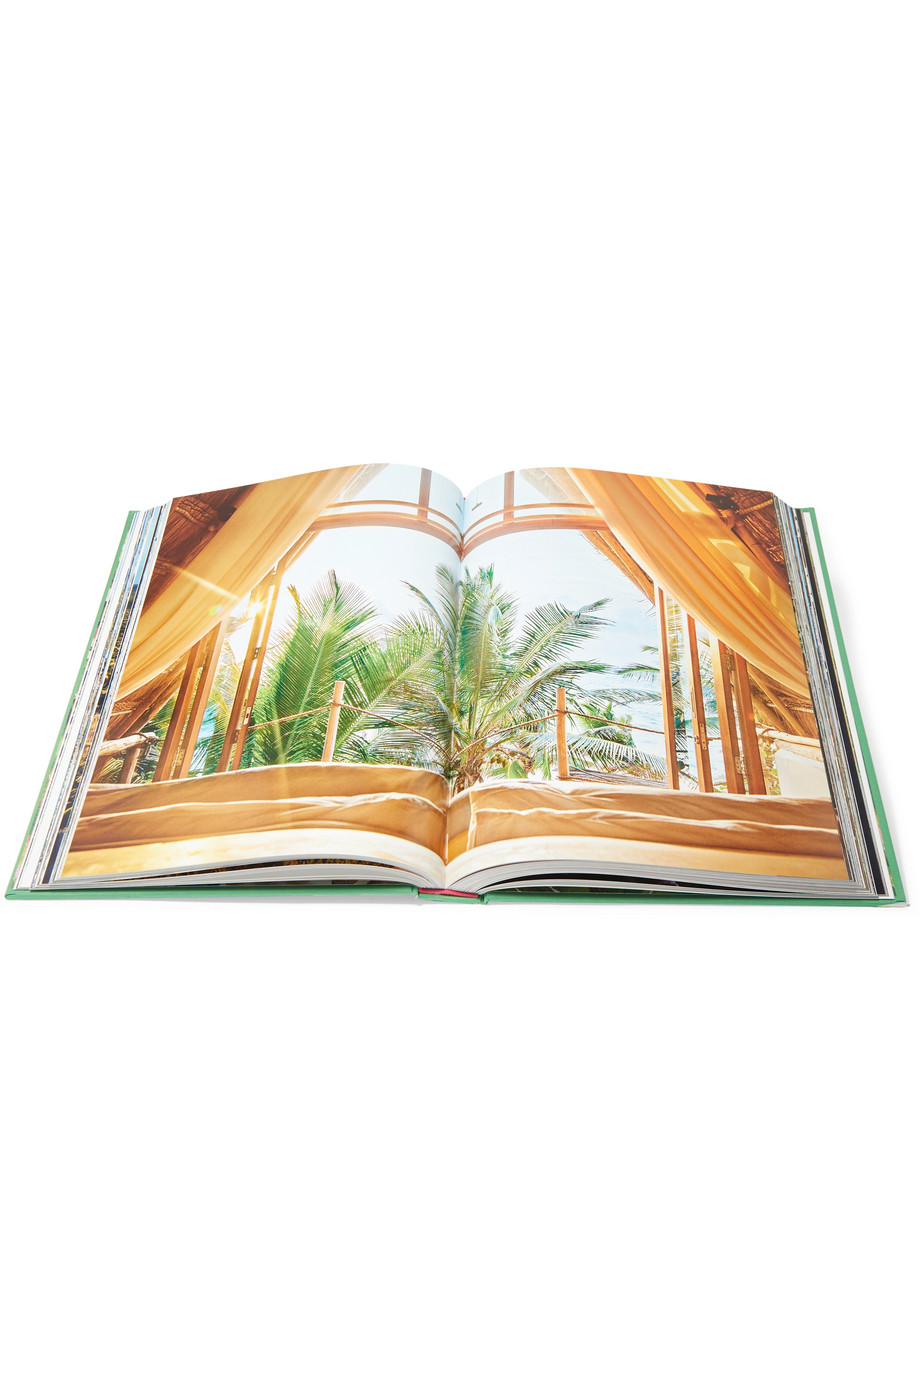 Assouline Tulum Gypset by Julia Chaplin hardcover book